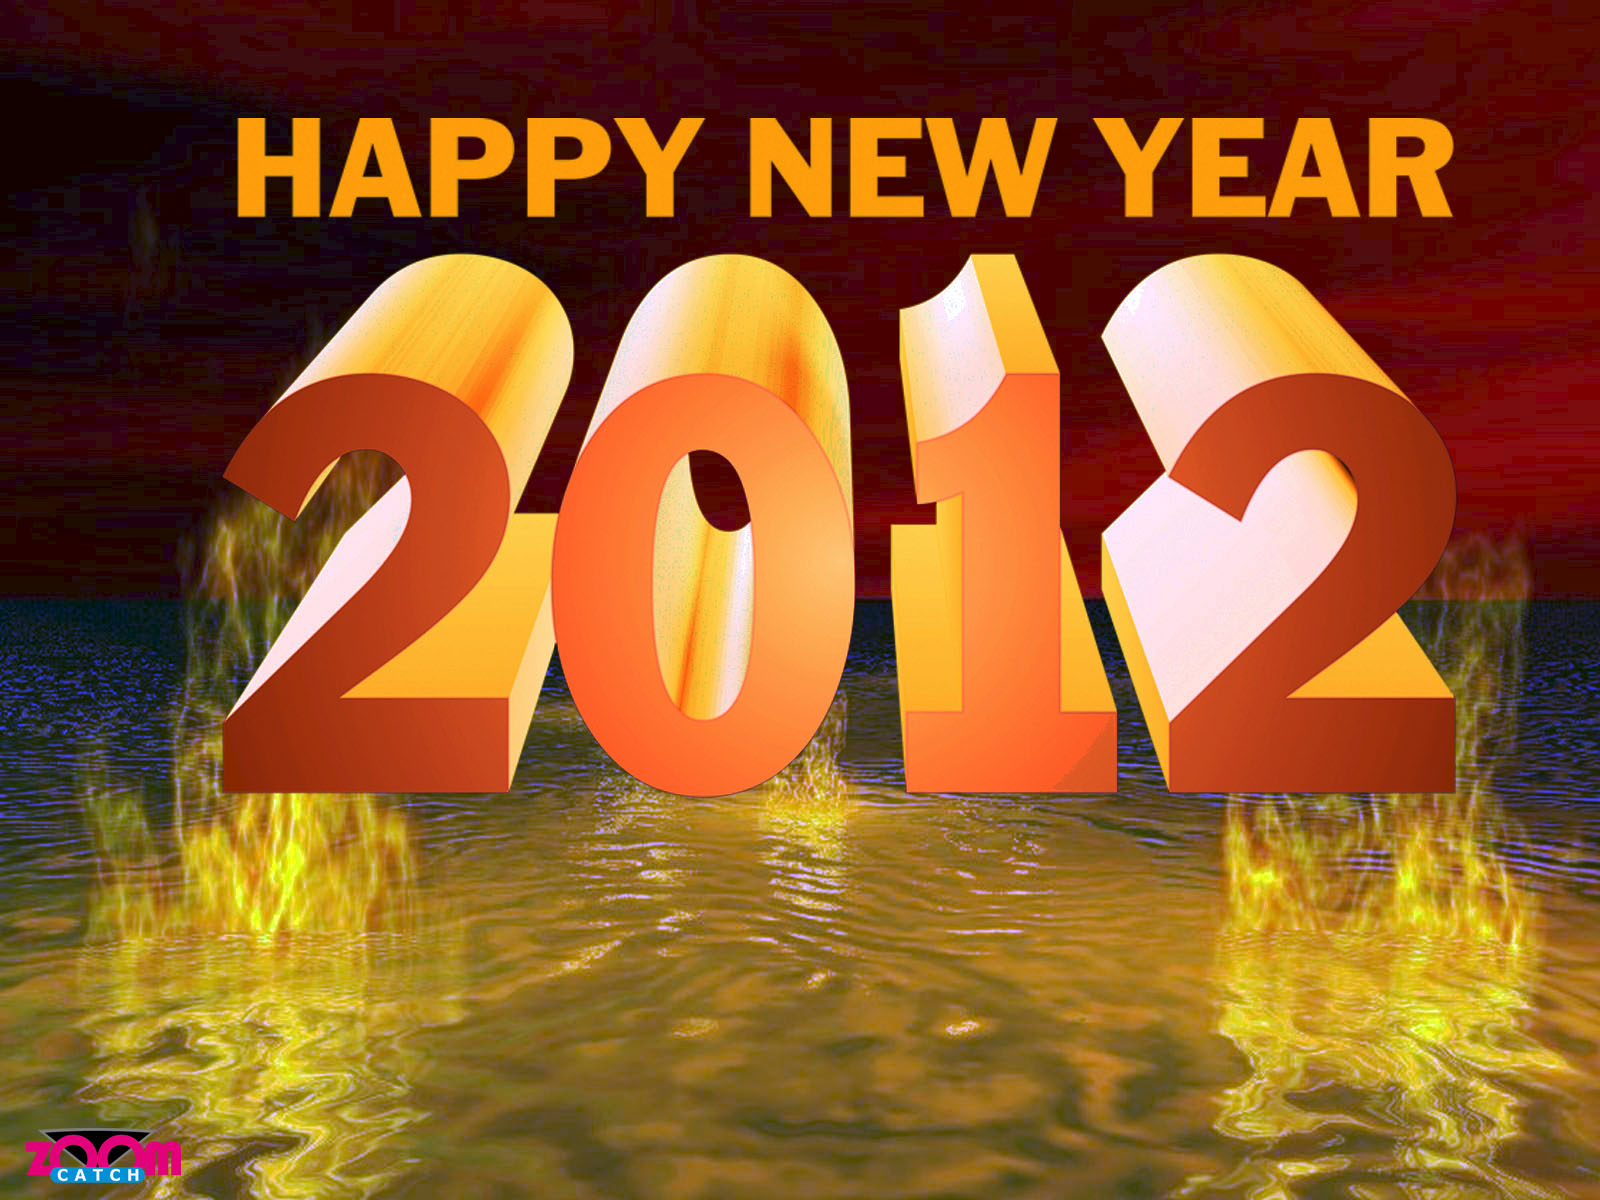 http://3.bp.blogspot.com/-4wuYboIPJAc/Tvg1jKjU9iI/AAAAAAAAIu4/9YMWwnJTqrY/s1600/Happy-New-Year-2012-wallpaper.jpg